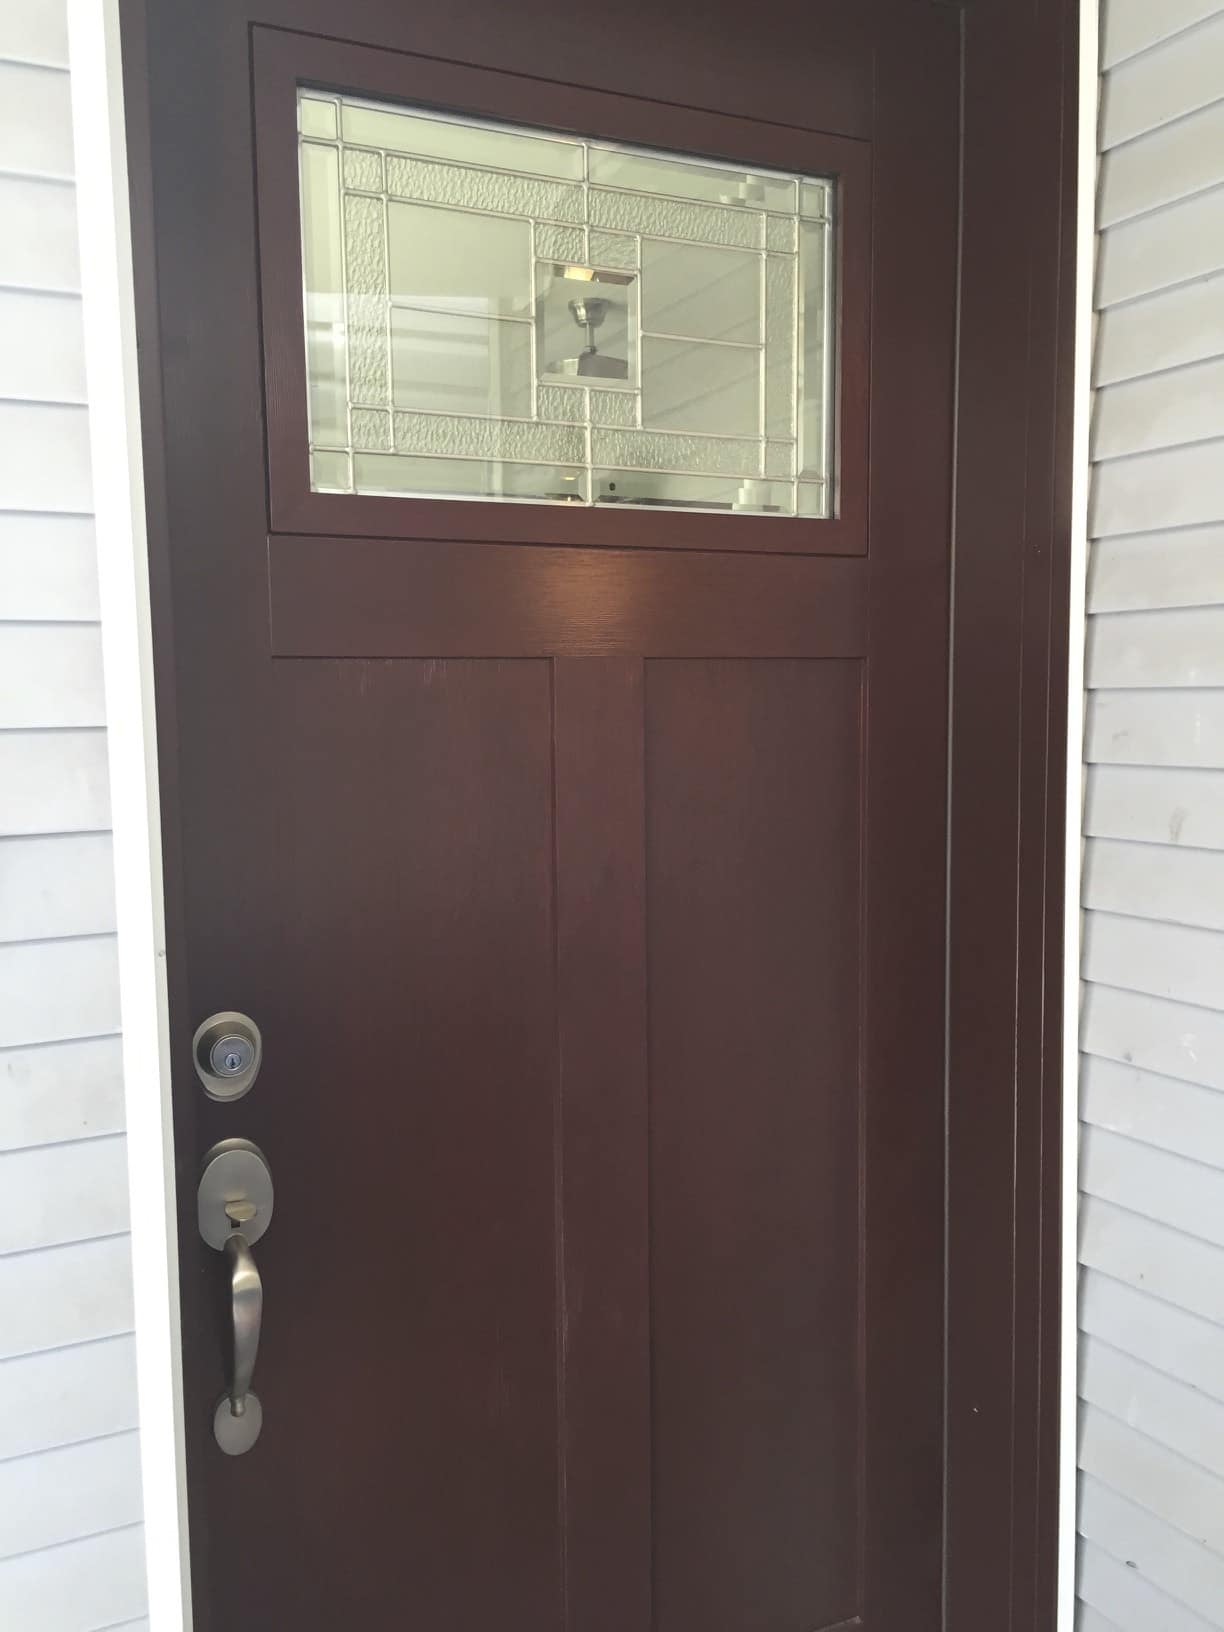 1632 #795B4D Enter Your Dream Home With A Fiberglass Entry Door pic Fiberglass Entry Doors With Glass 38611224